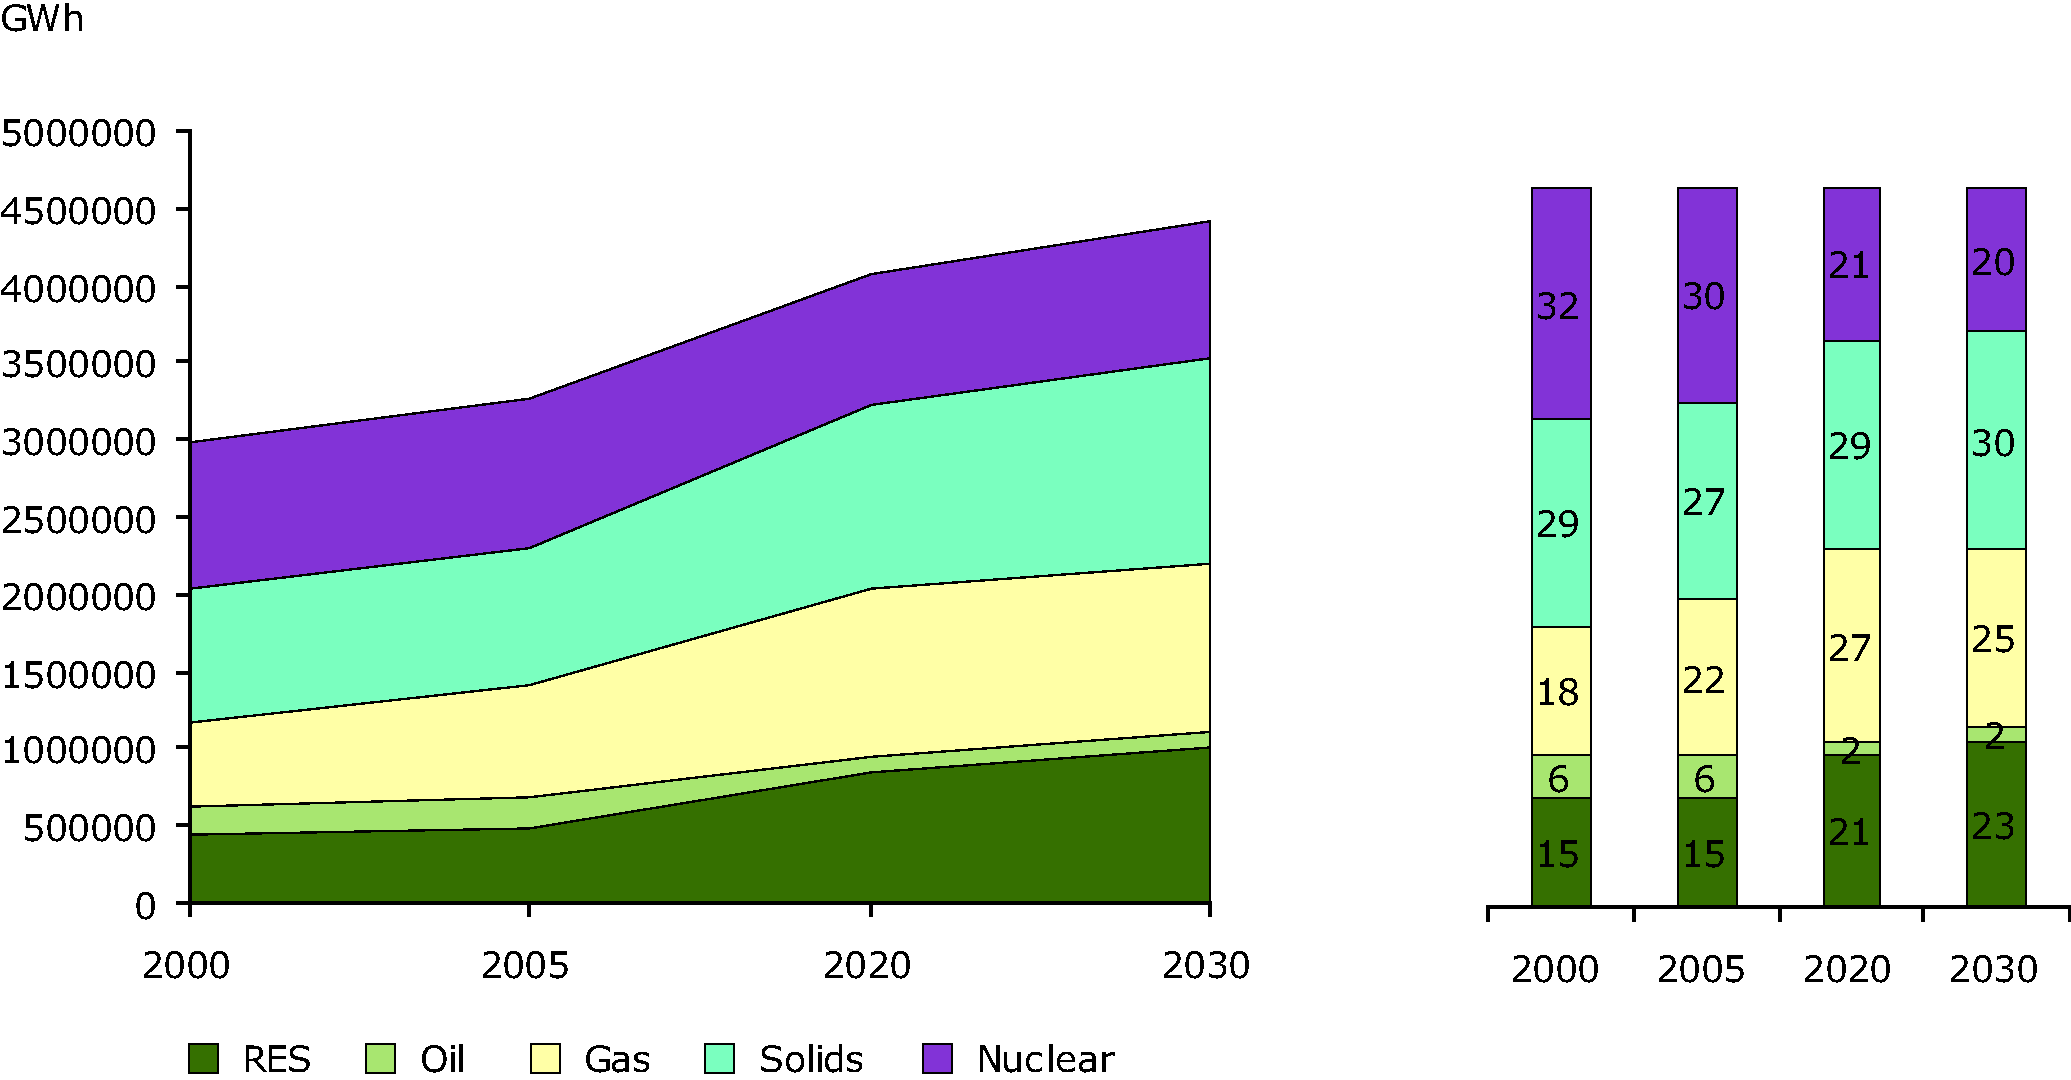 Electricity Generation by Fuel from 2000 to 2030, in EU 27